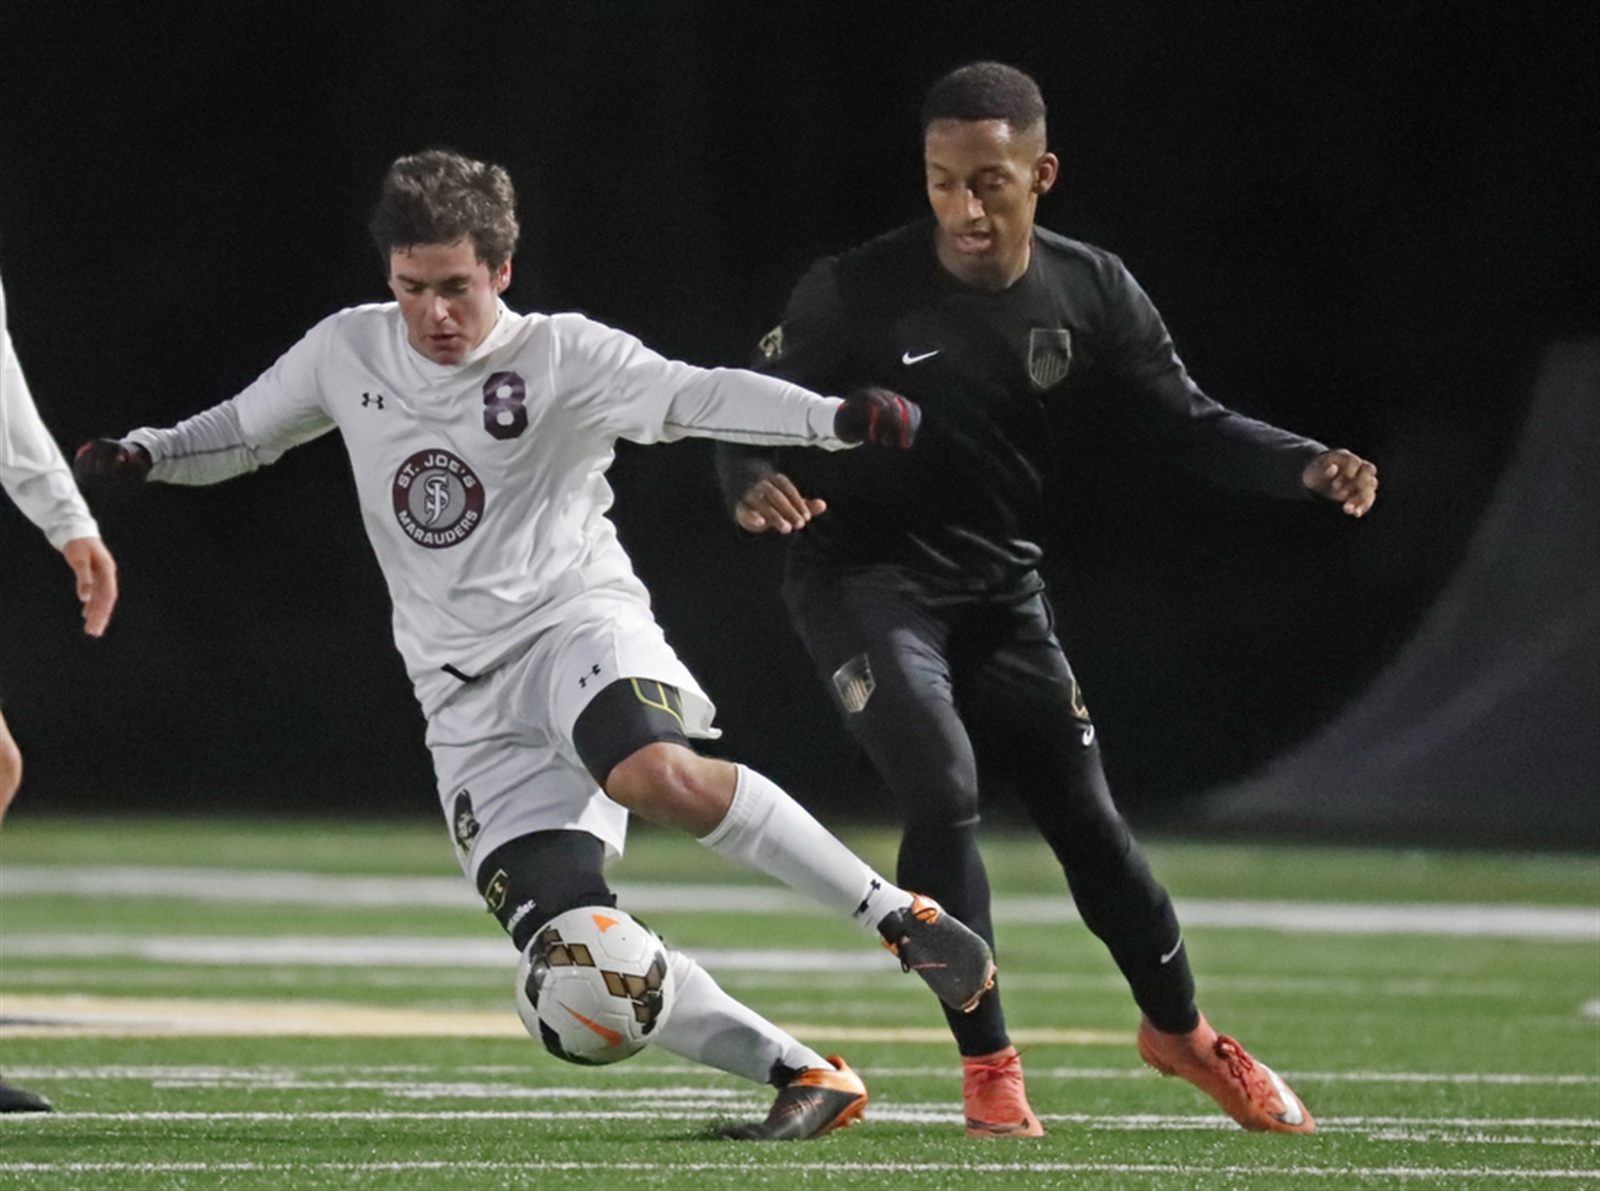 Spencer Frome (8) and St. Joe's host Lackawanna in a nonleague boys soccer match Tuesday. (Harry Scull Jr./Buffalo News)